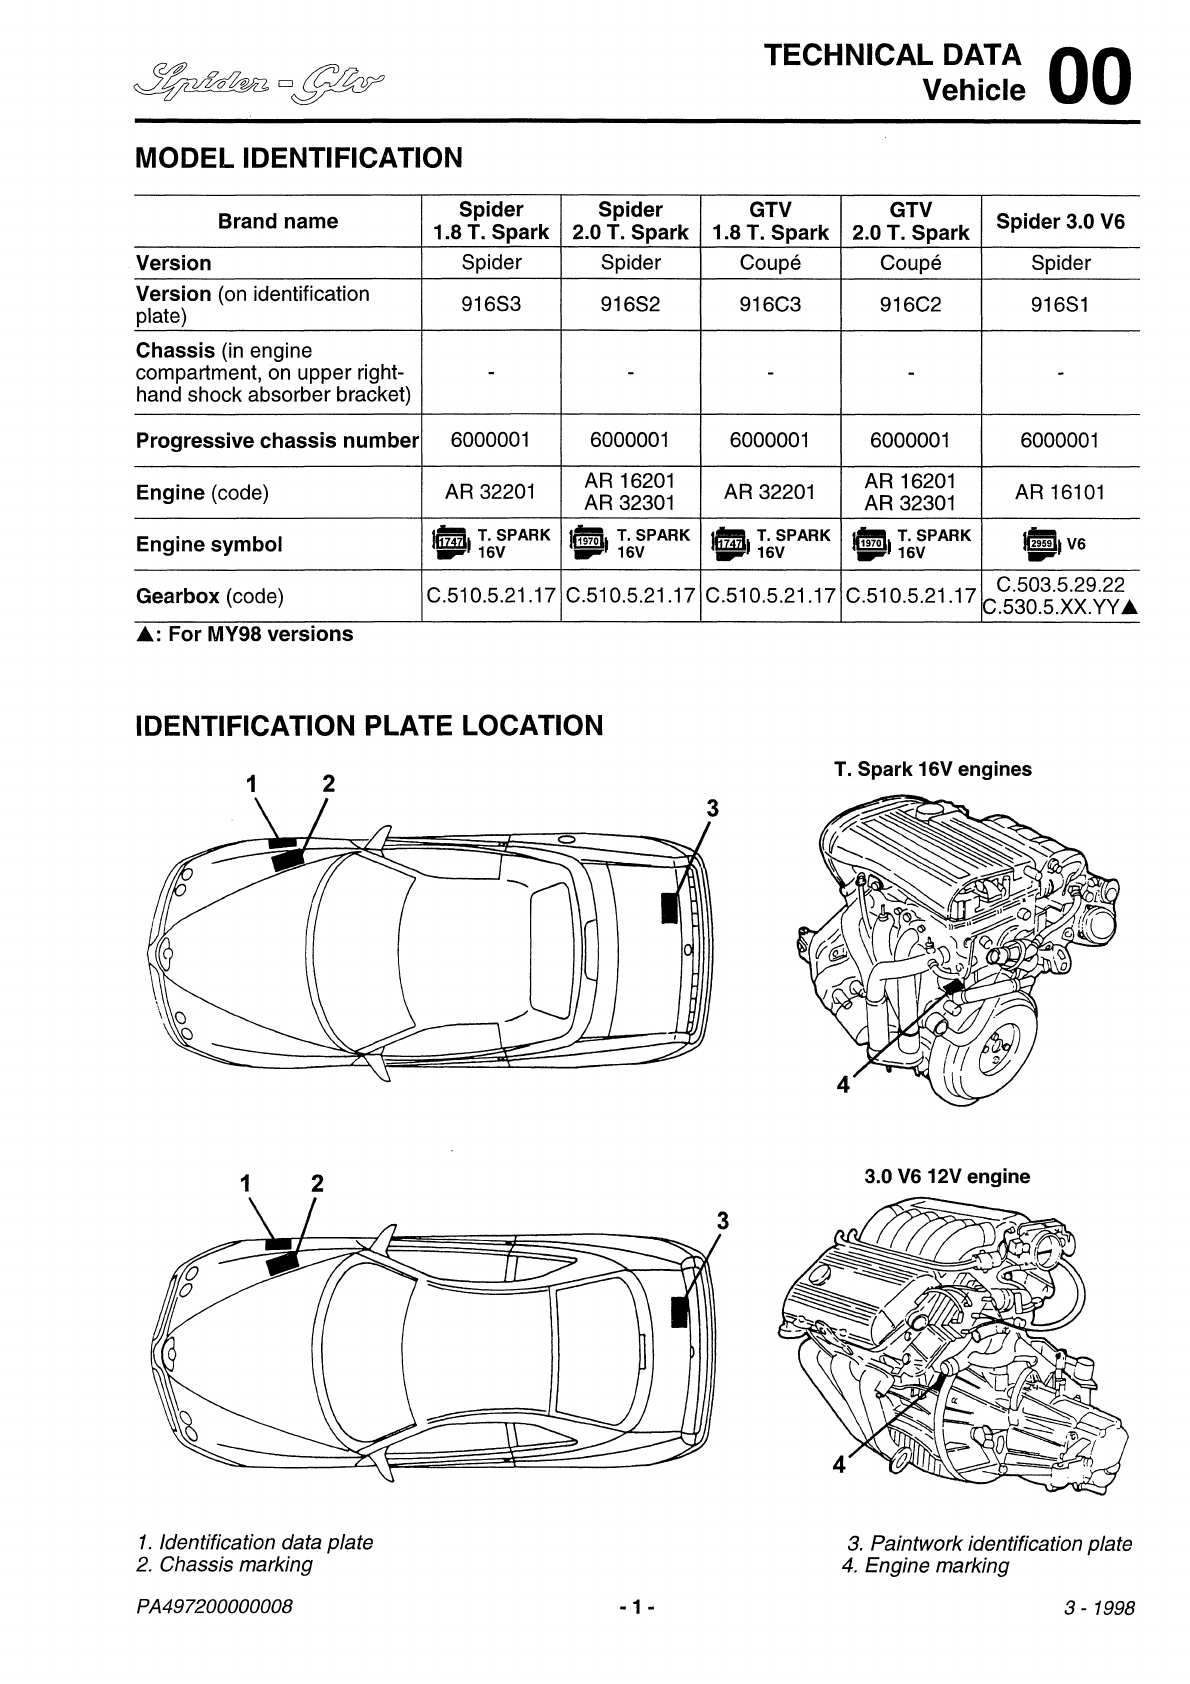 See our other Alfa Romeo GTV Manuals: